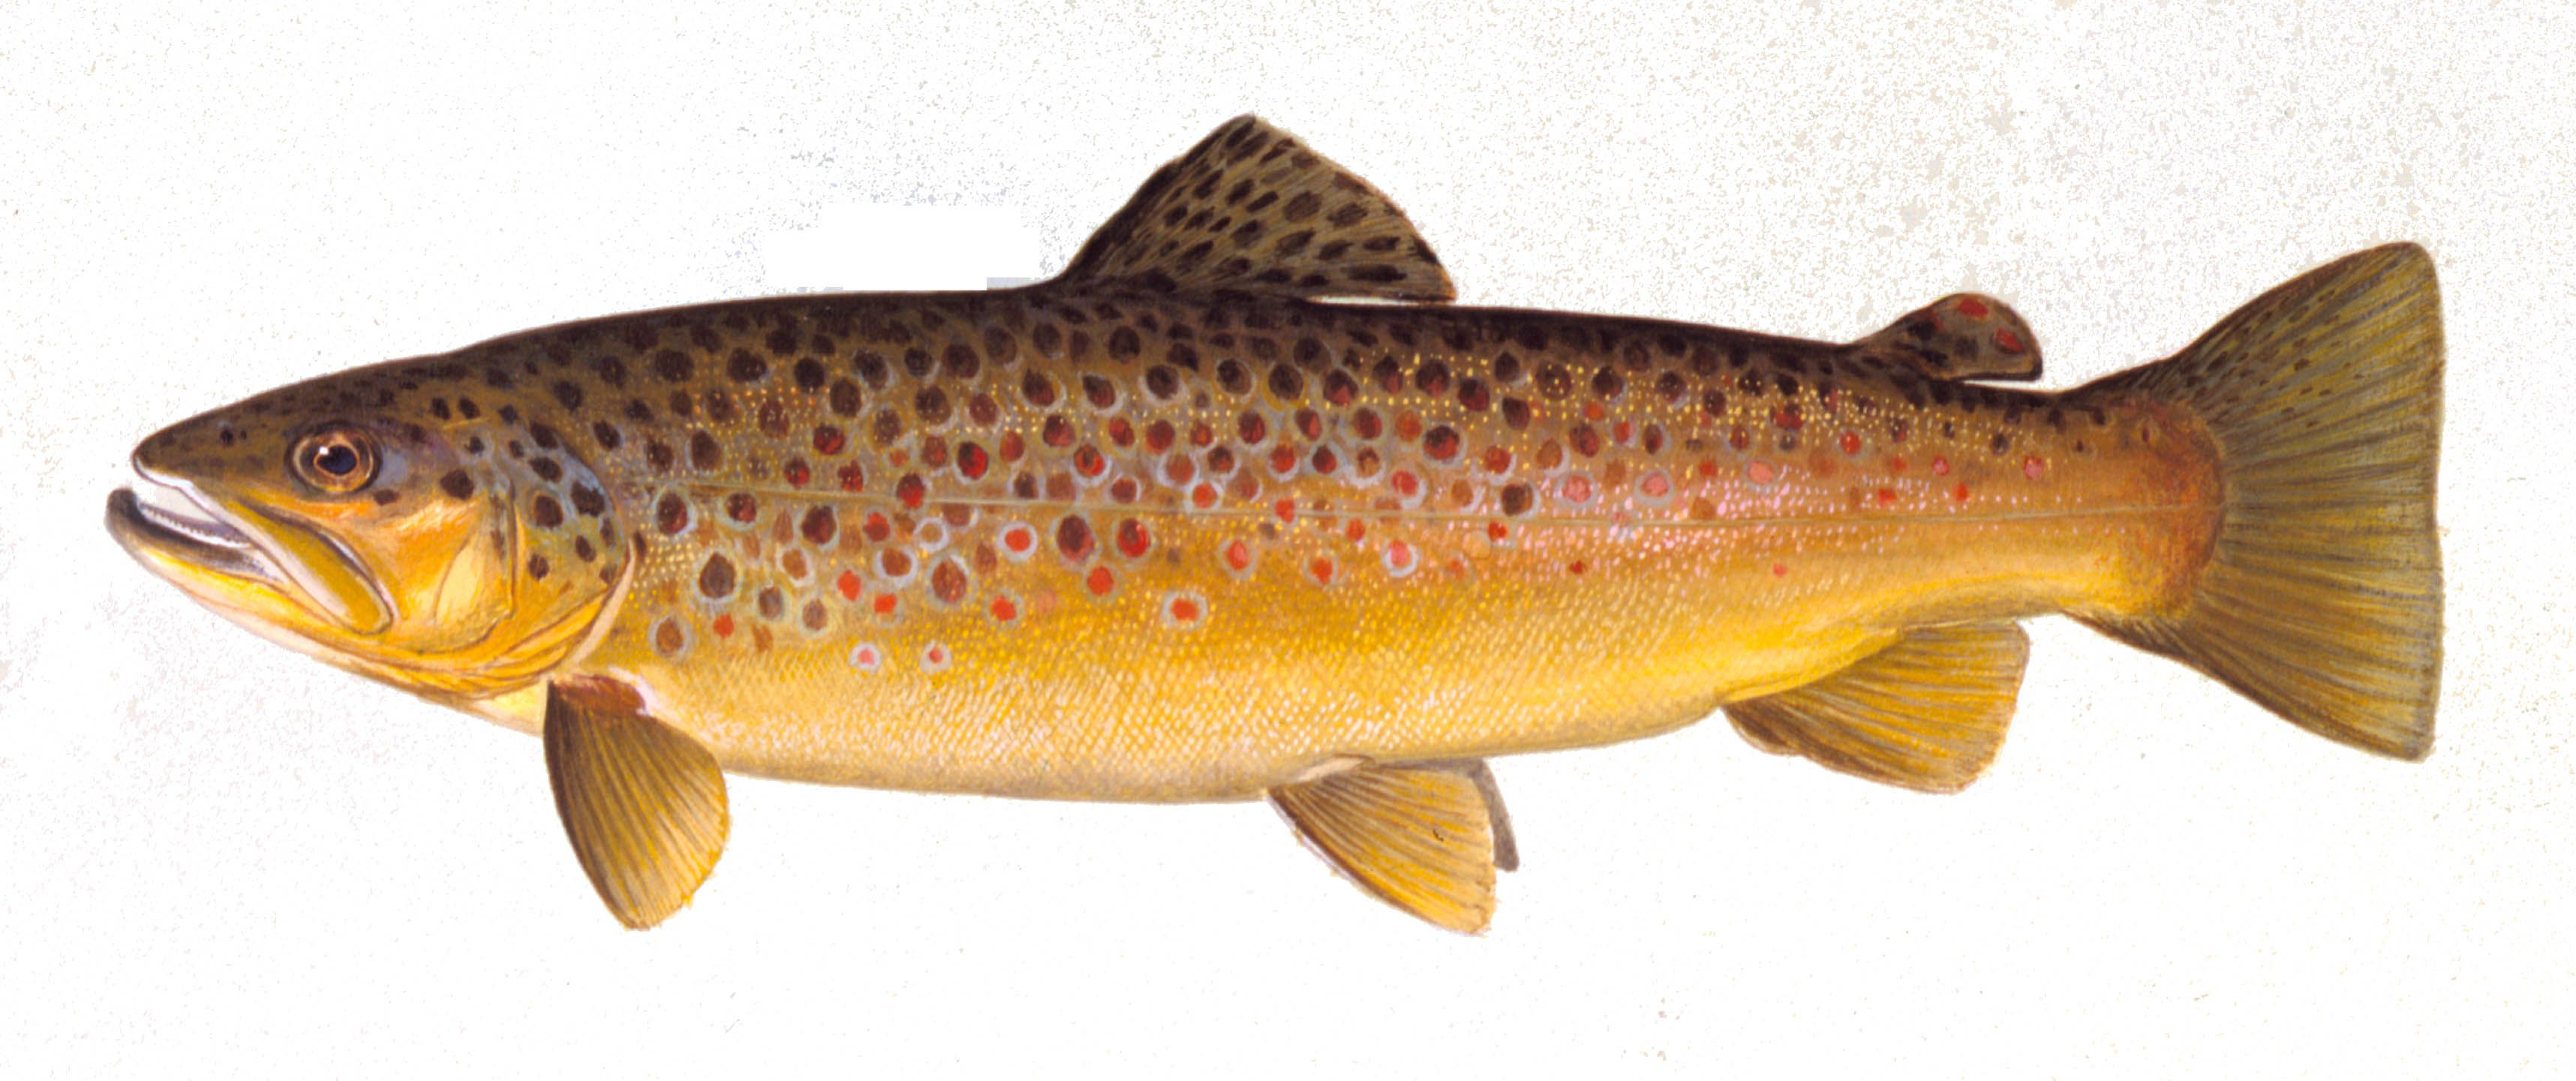 15+ Different Types of Trout Fish with Pictures | Trout | Pinterest ...